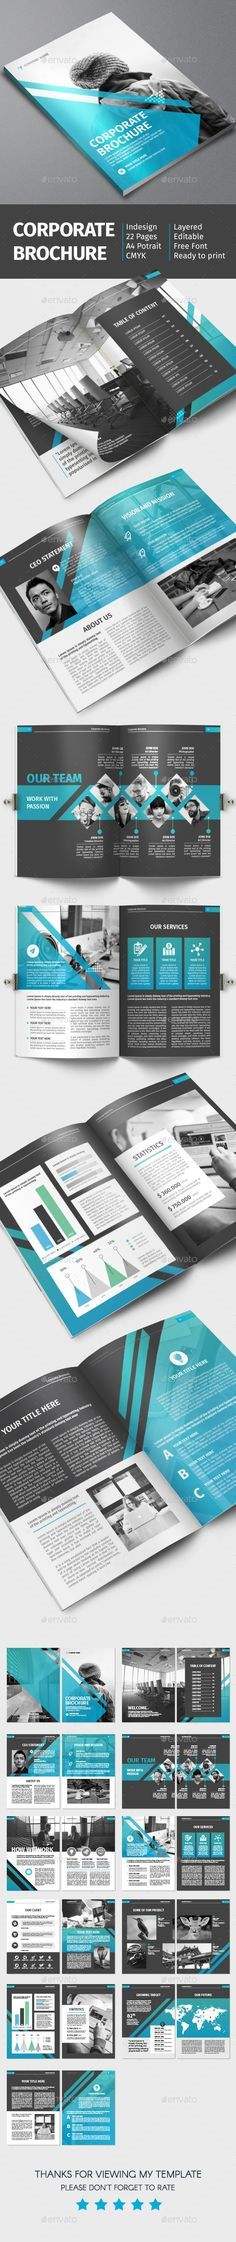 14 best images on pinterest page layout graph design and corporate brochure template indesign indd download here httpgraphicriver fandeluxe Image collections